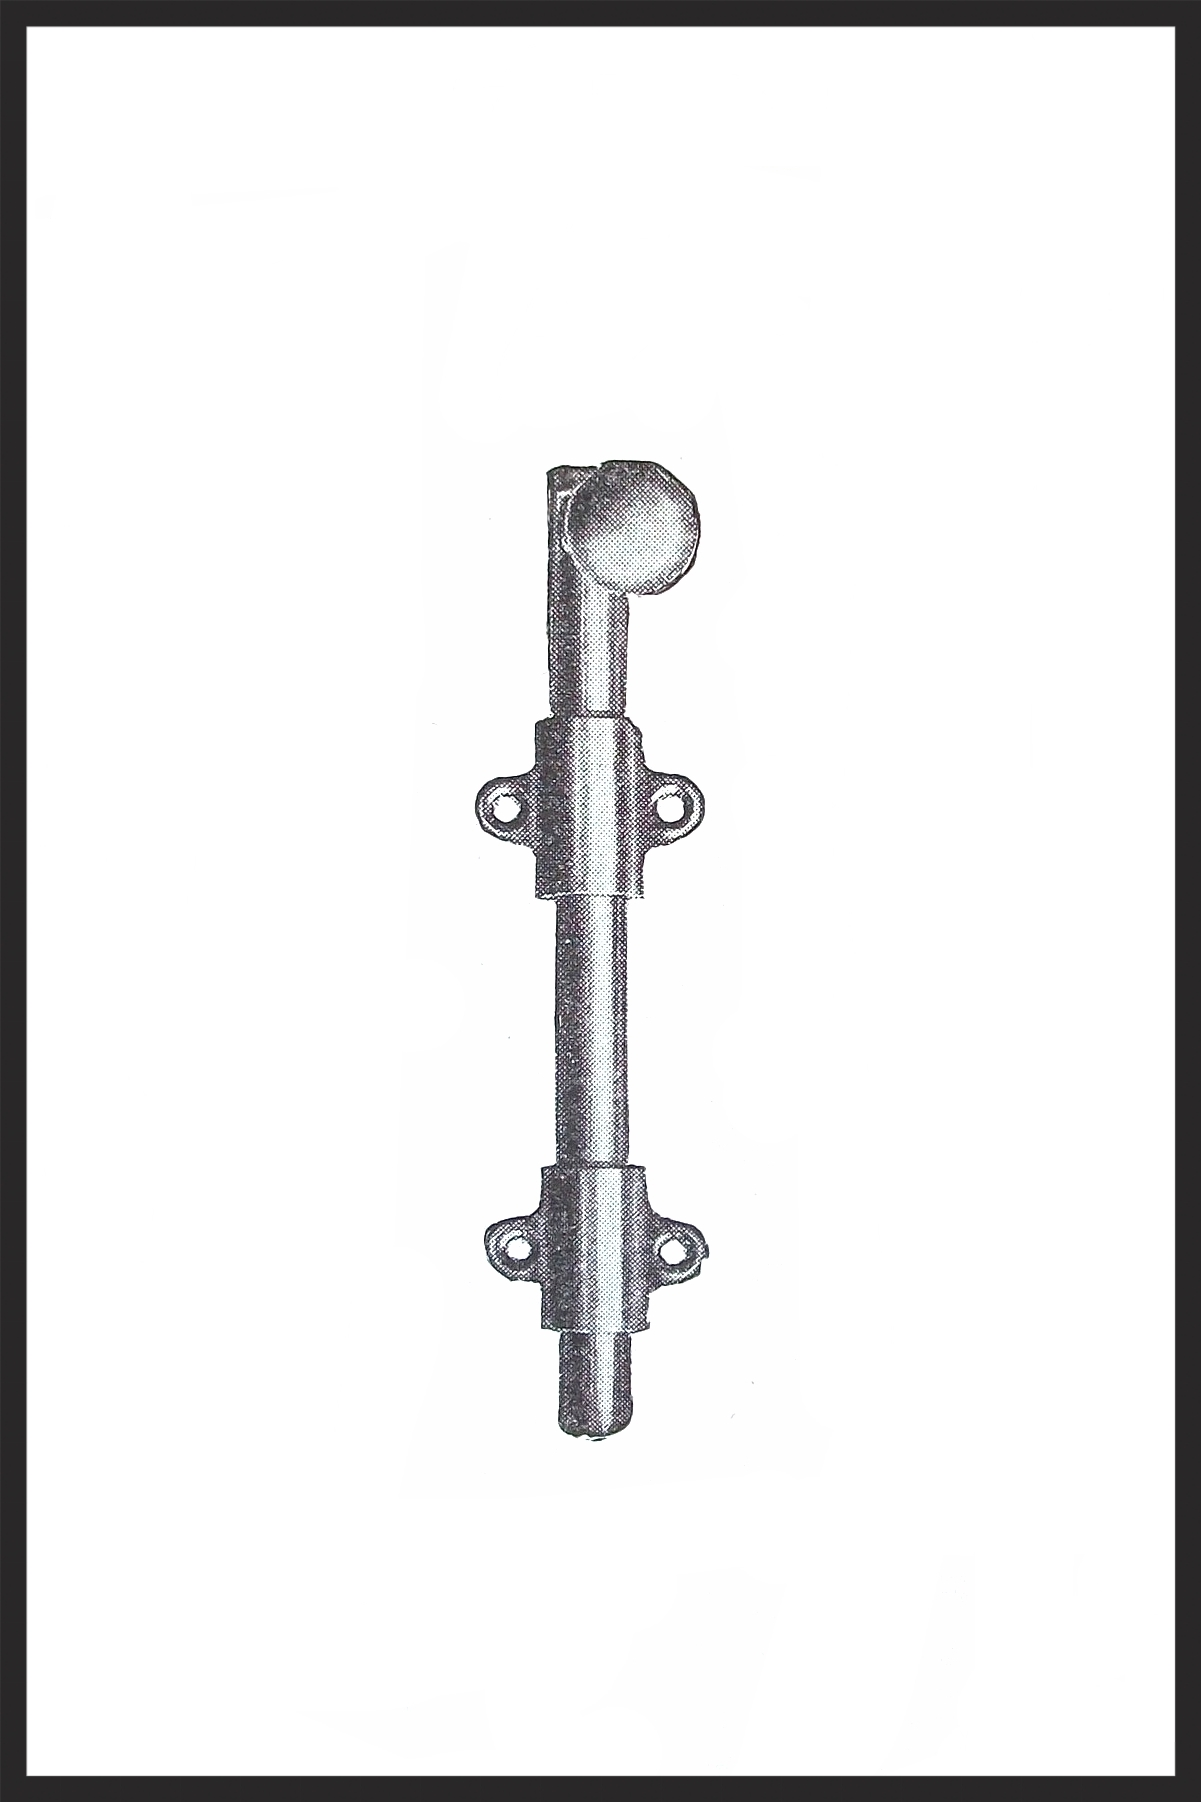 HD - BOLT - SURFACE -  with guide.jpg